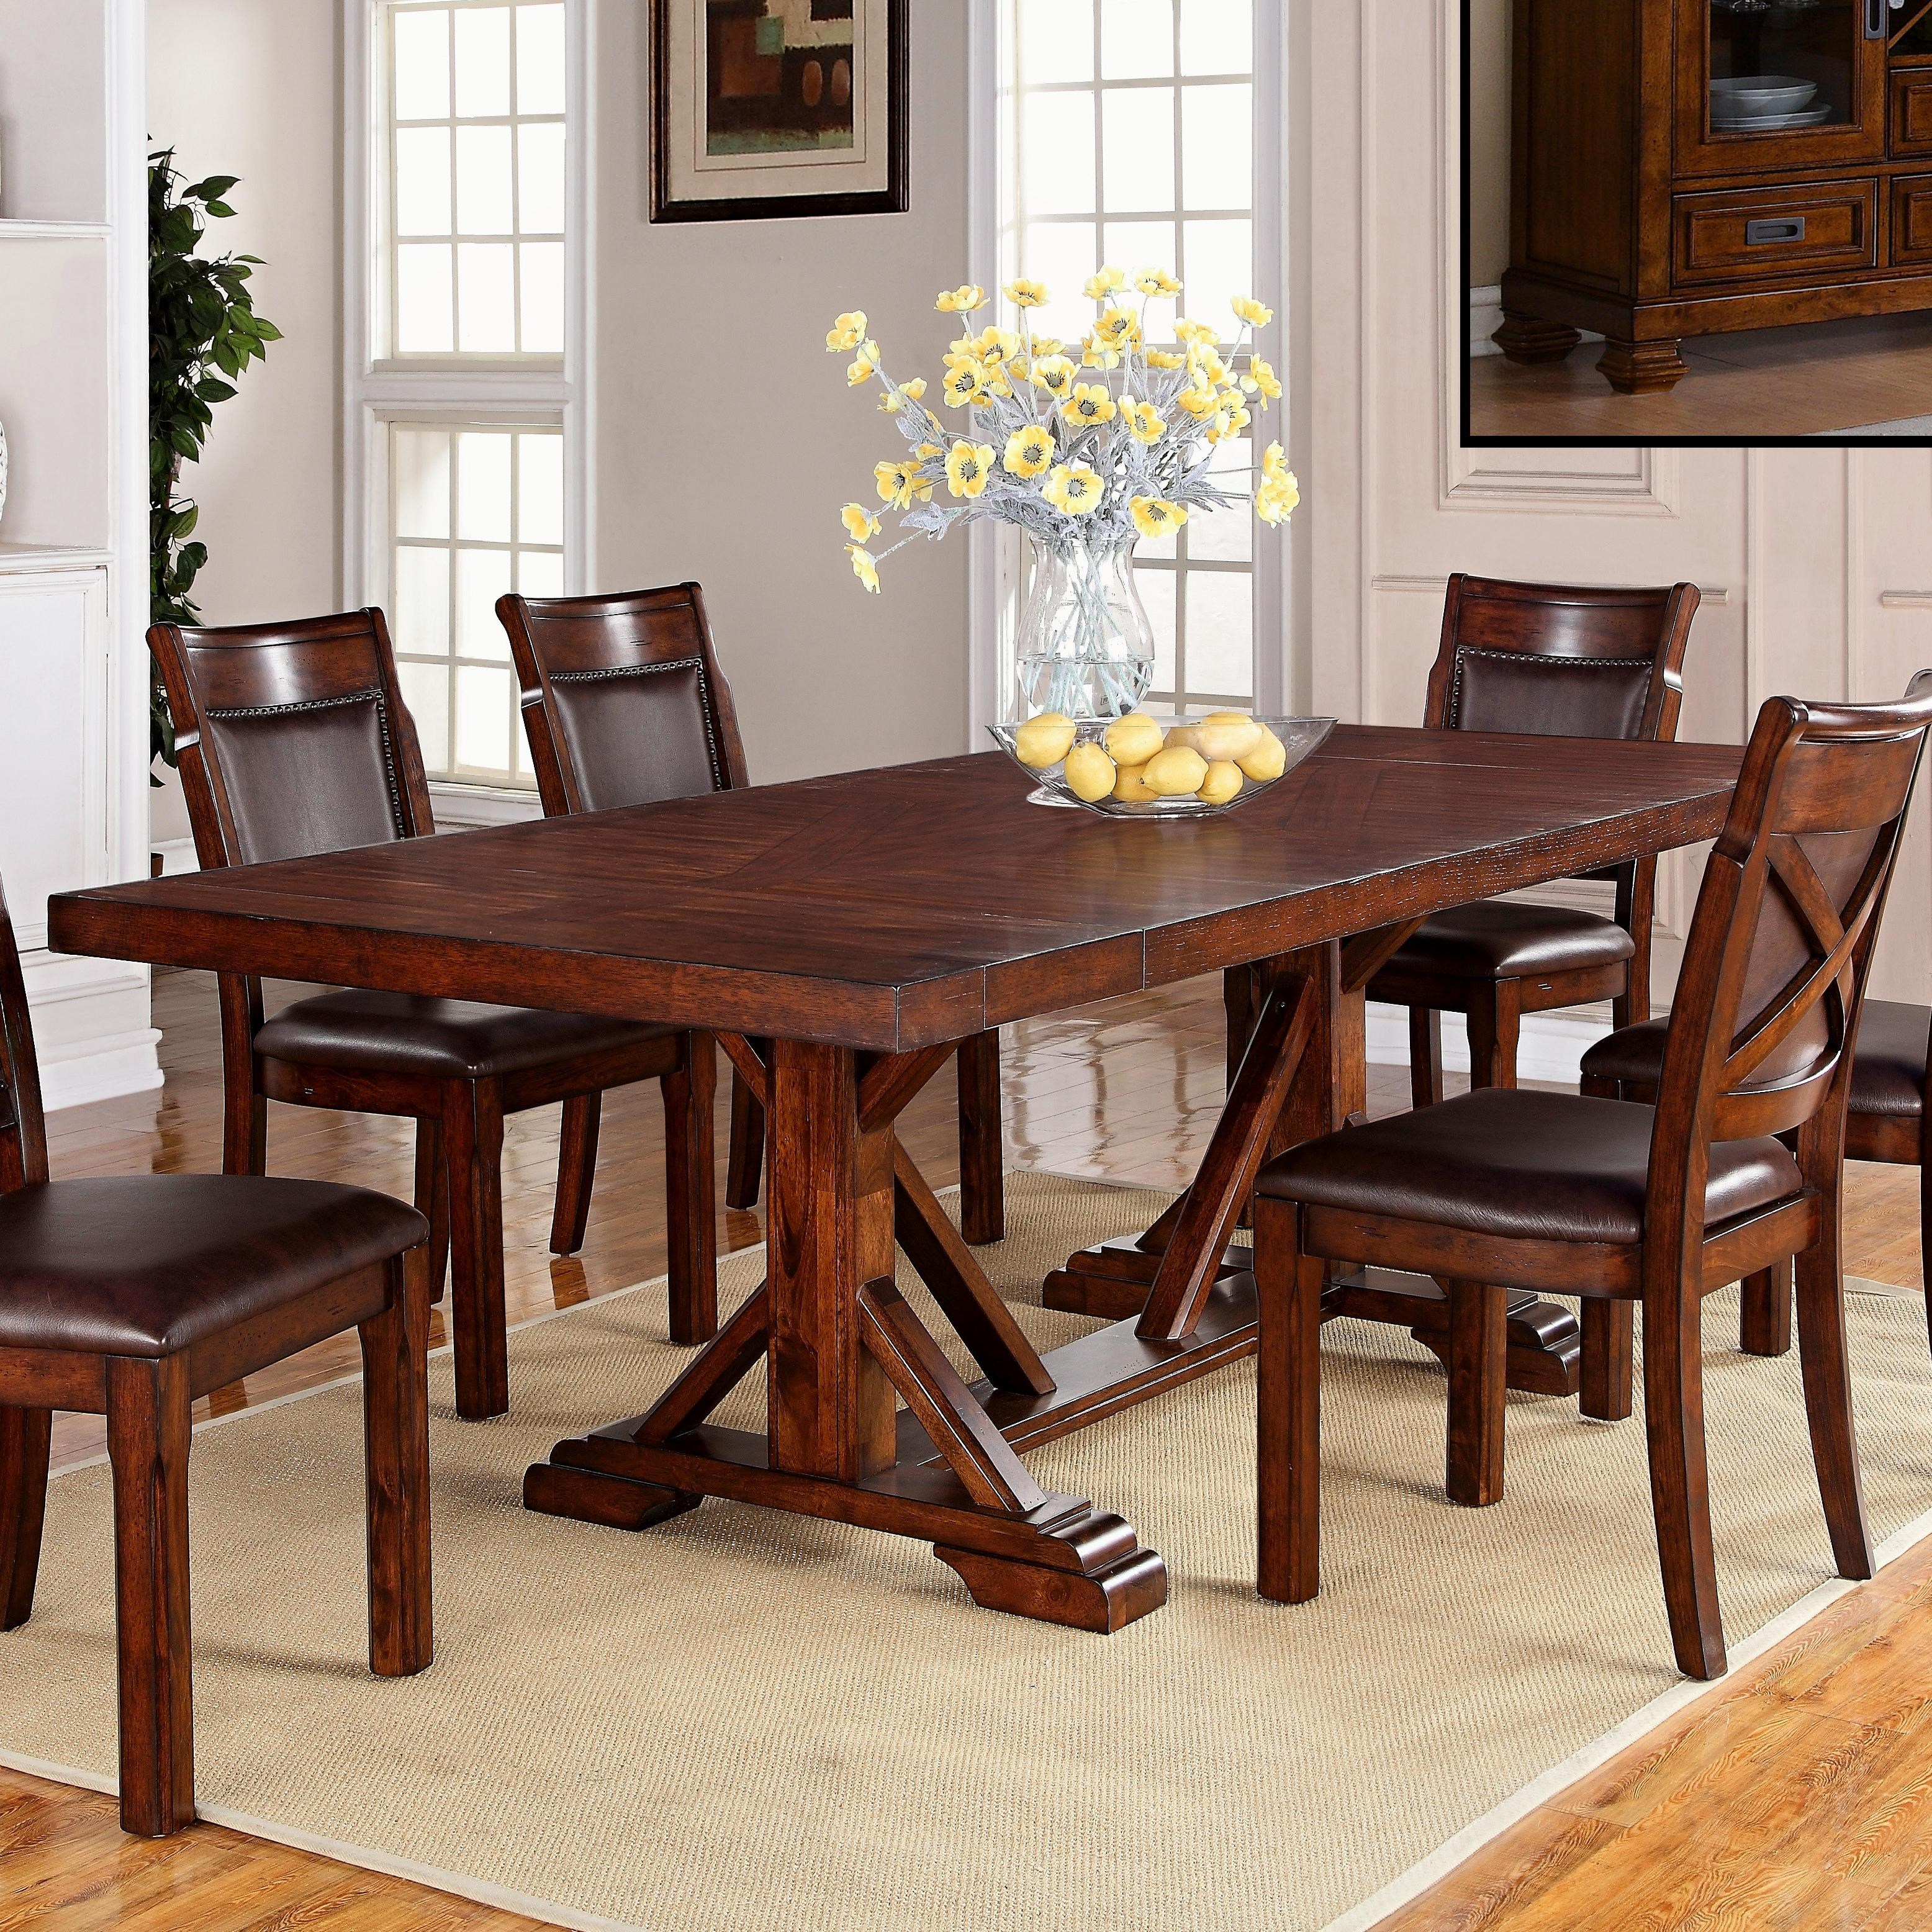 Holland House Cascade Trestle Dining Table With Two Leaves